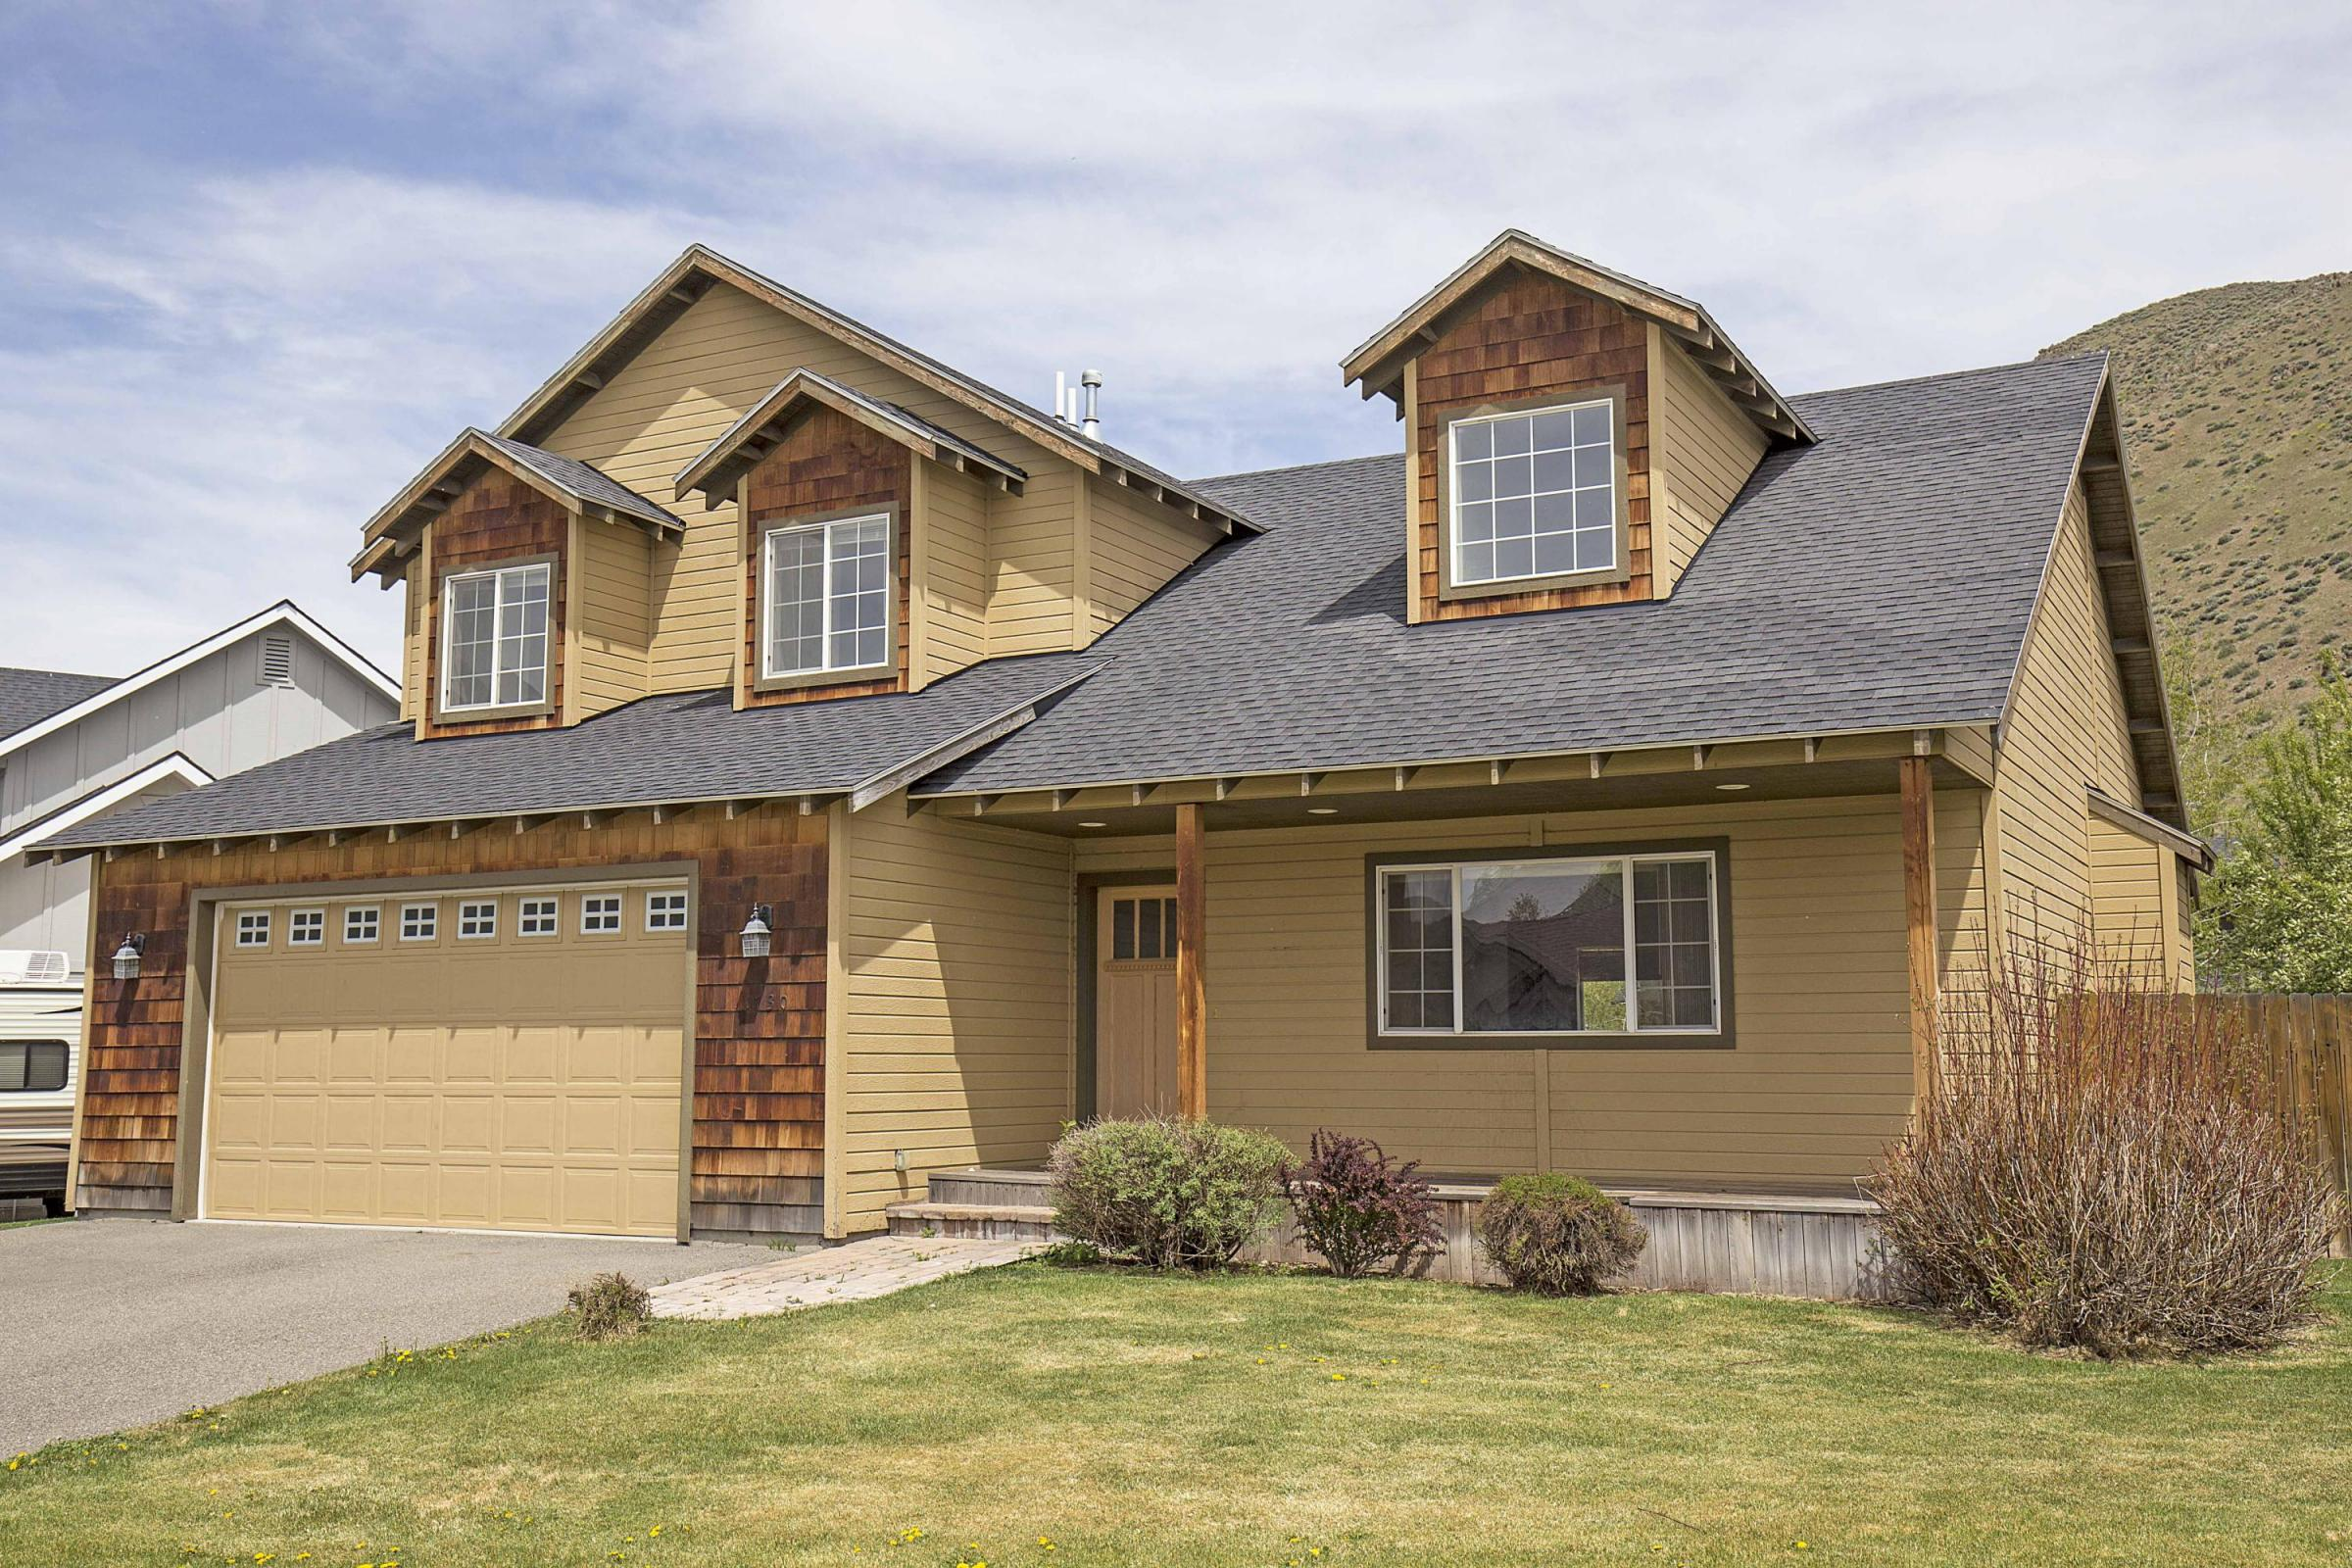 Craftsman Style Large Home - $429,000